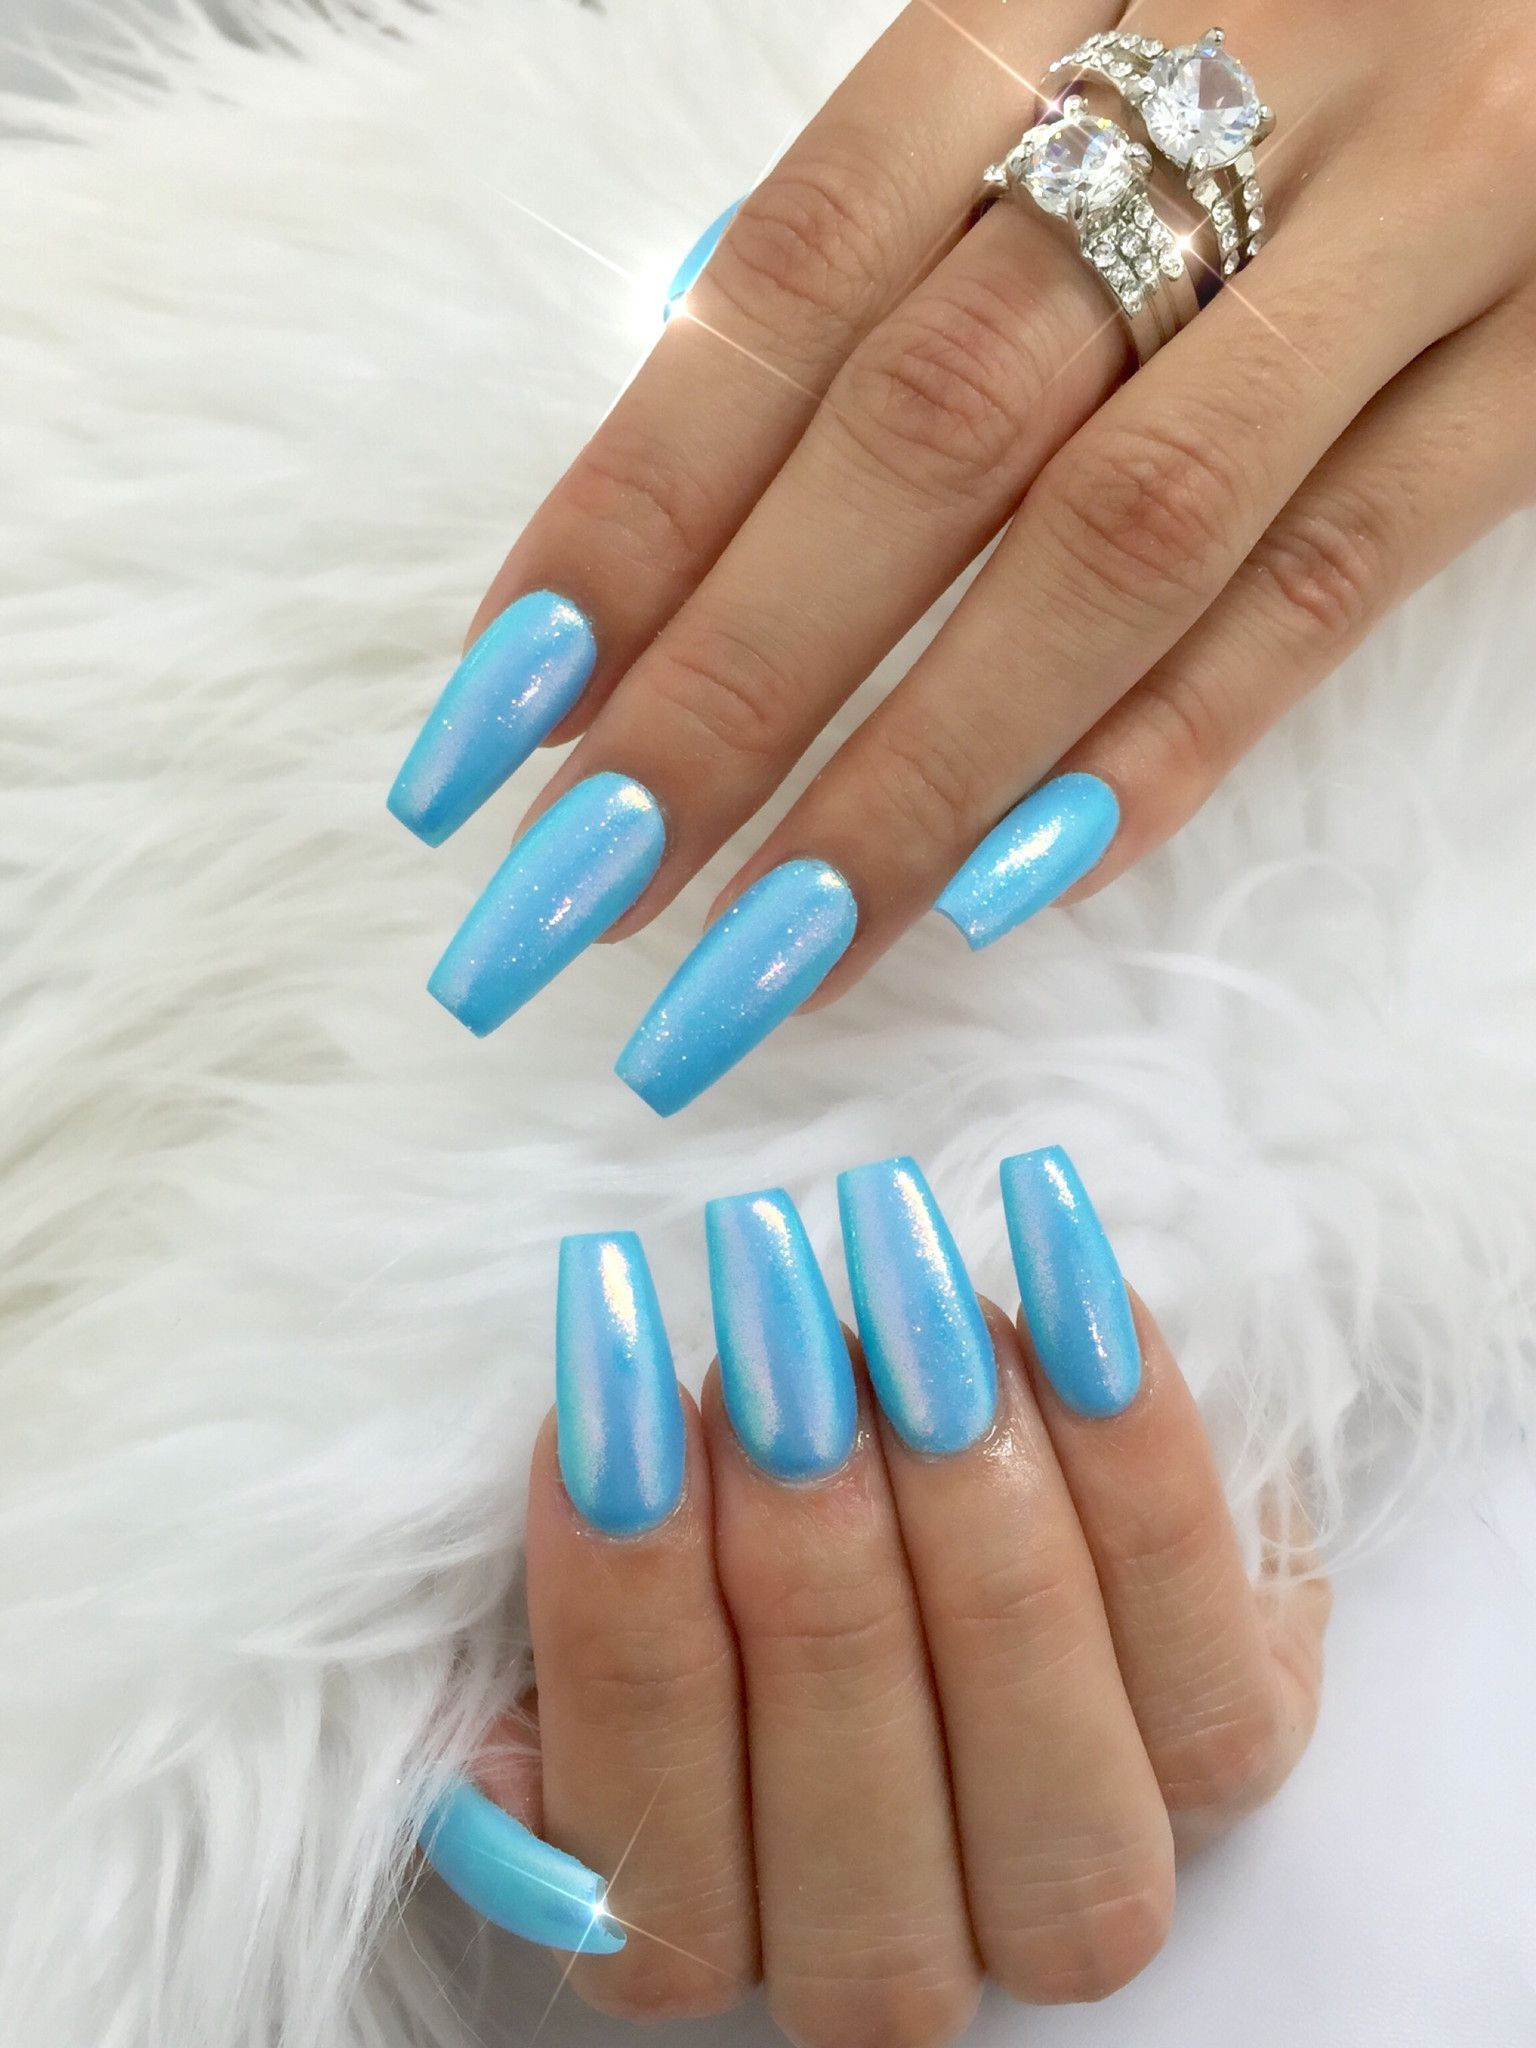 Pin by audrey nava on nails | Pinterest | Gorgeous nails, Nail inspo ...